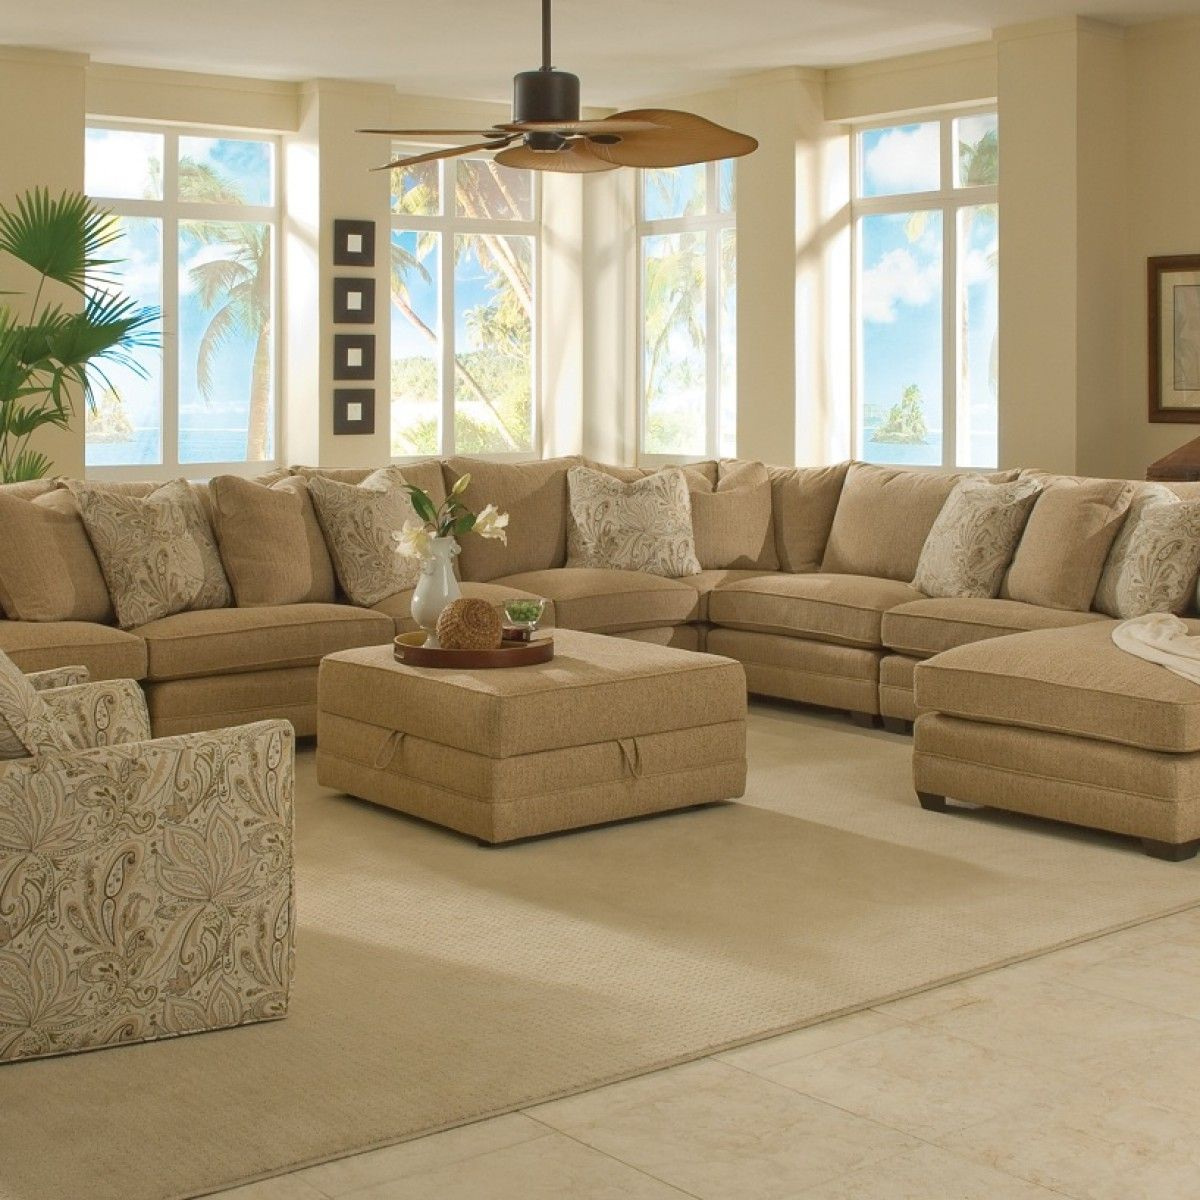 Magnificent Large Sectional Sofas With